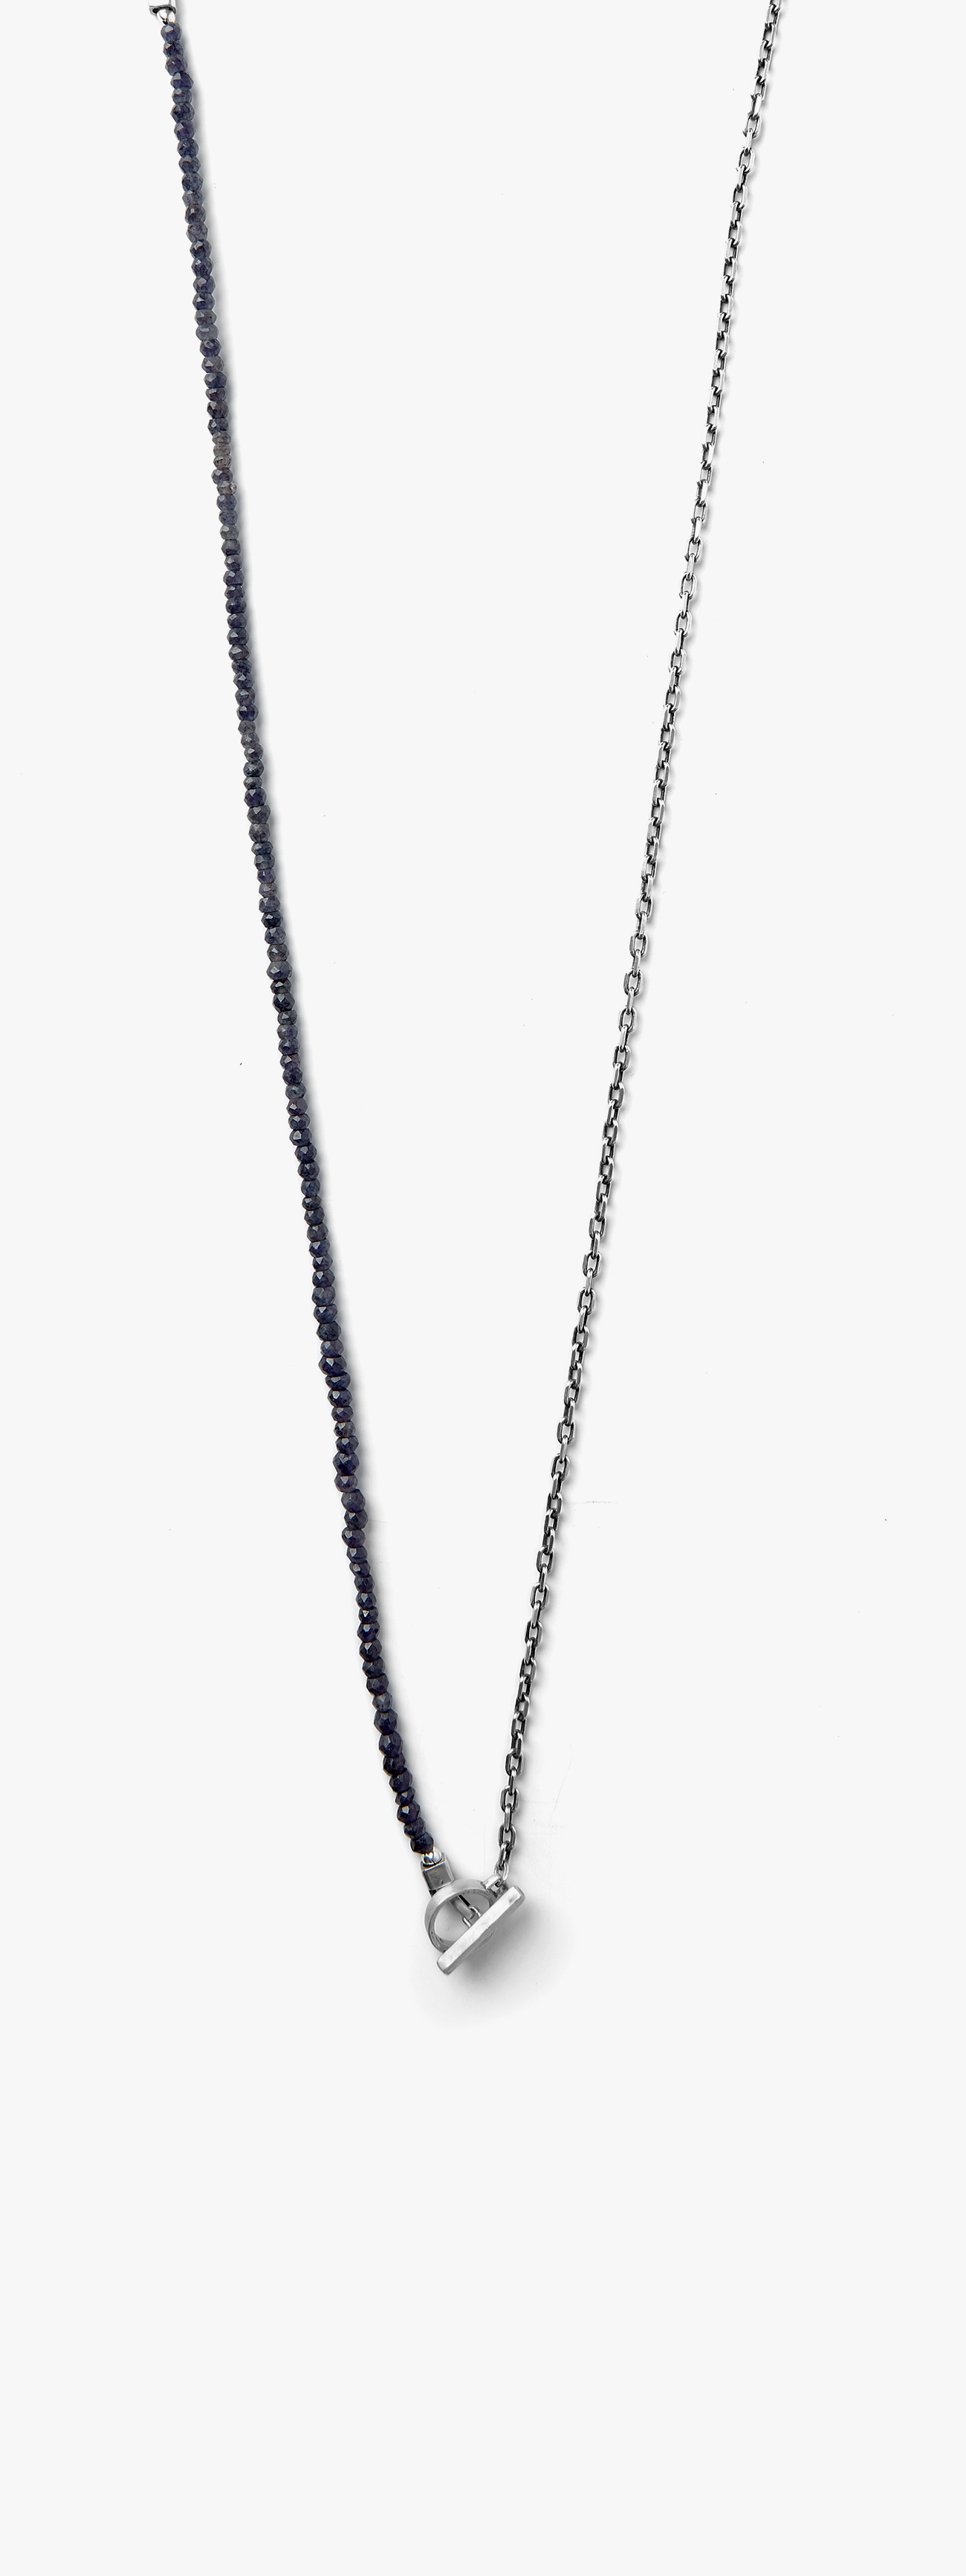 Image of Sapphire Beaded to Anchor Chain w/ Toggle Necklace